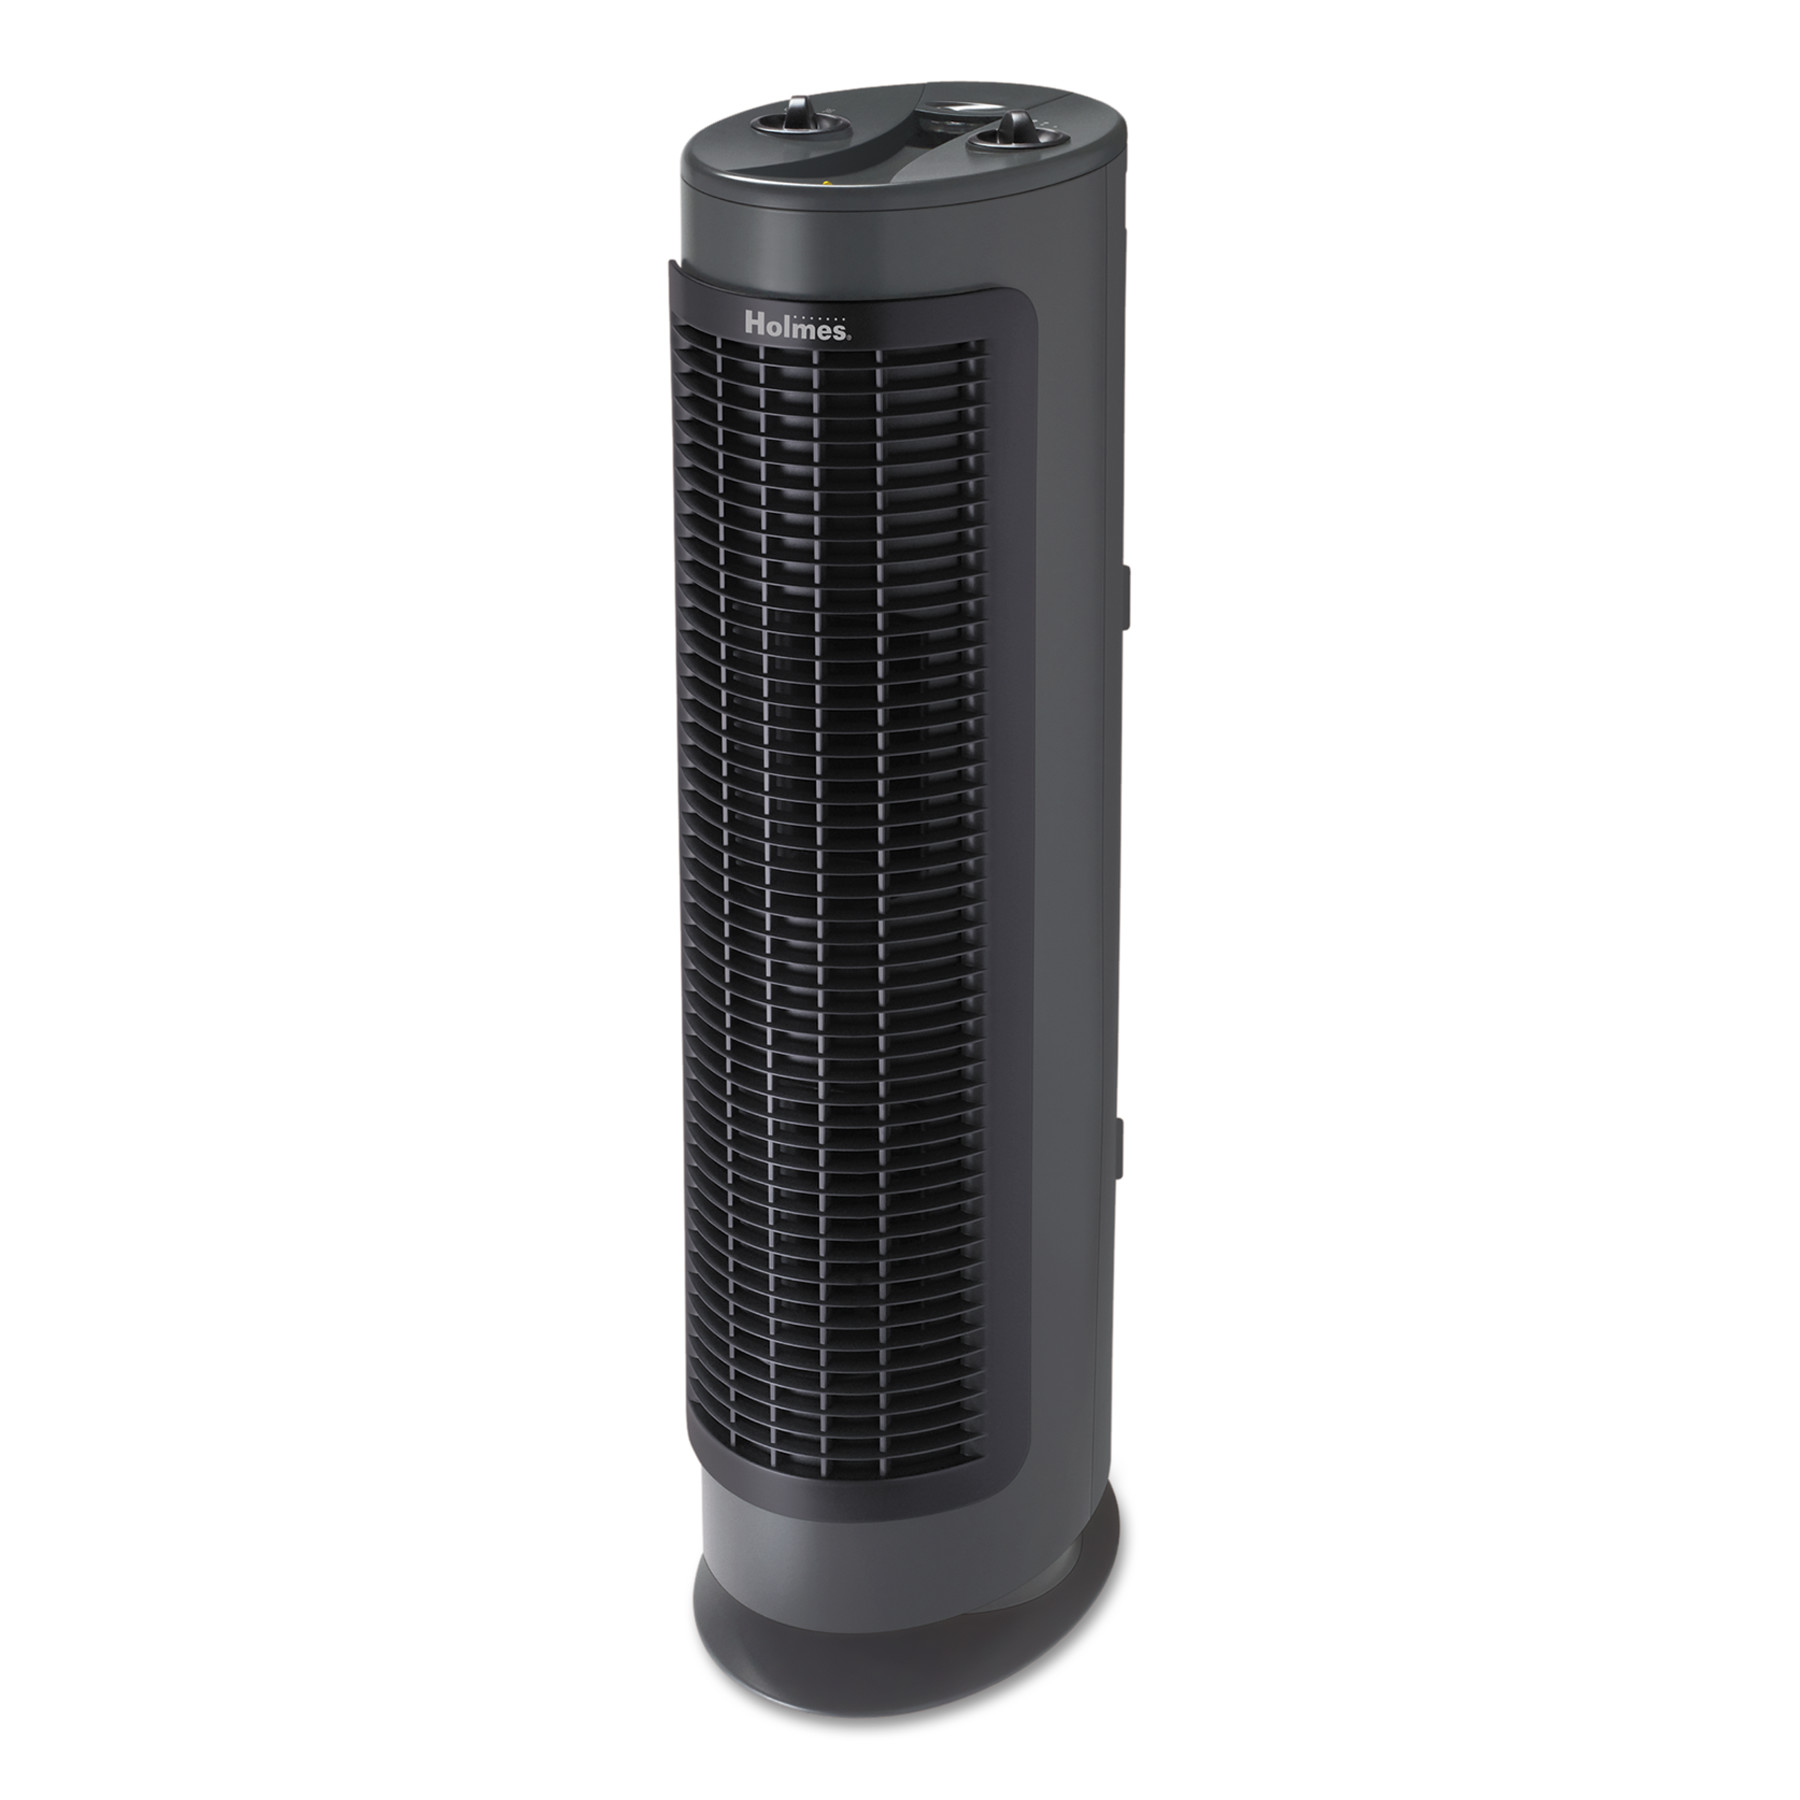 holmes harmony carbon filter air purifier 180 sq ft room capacity